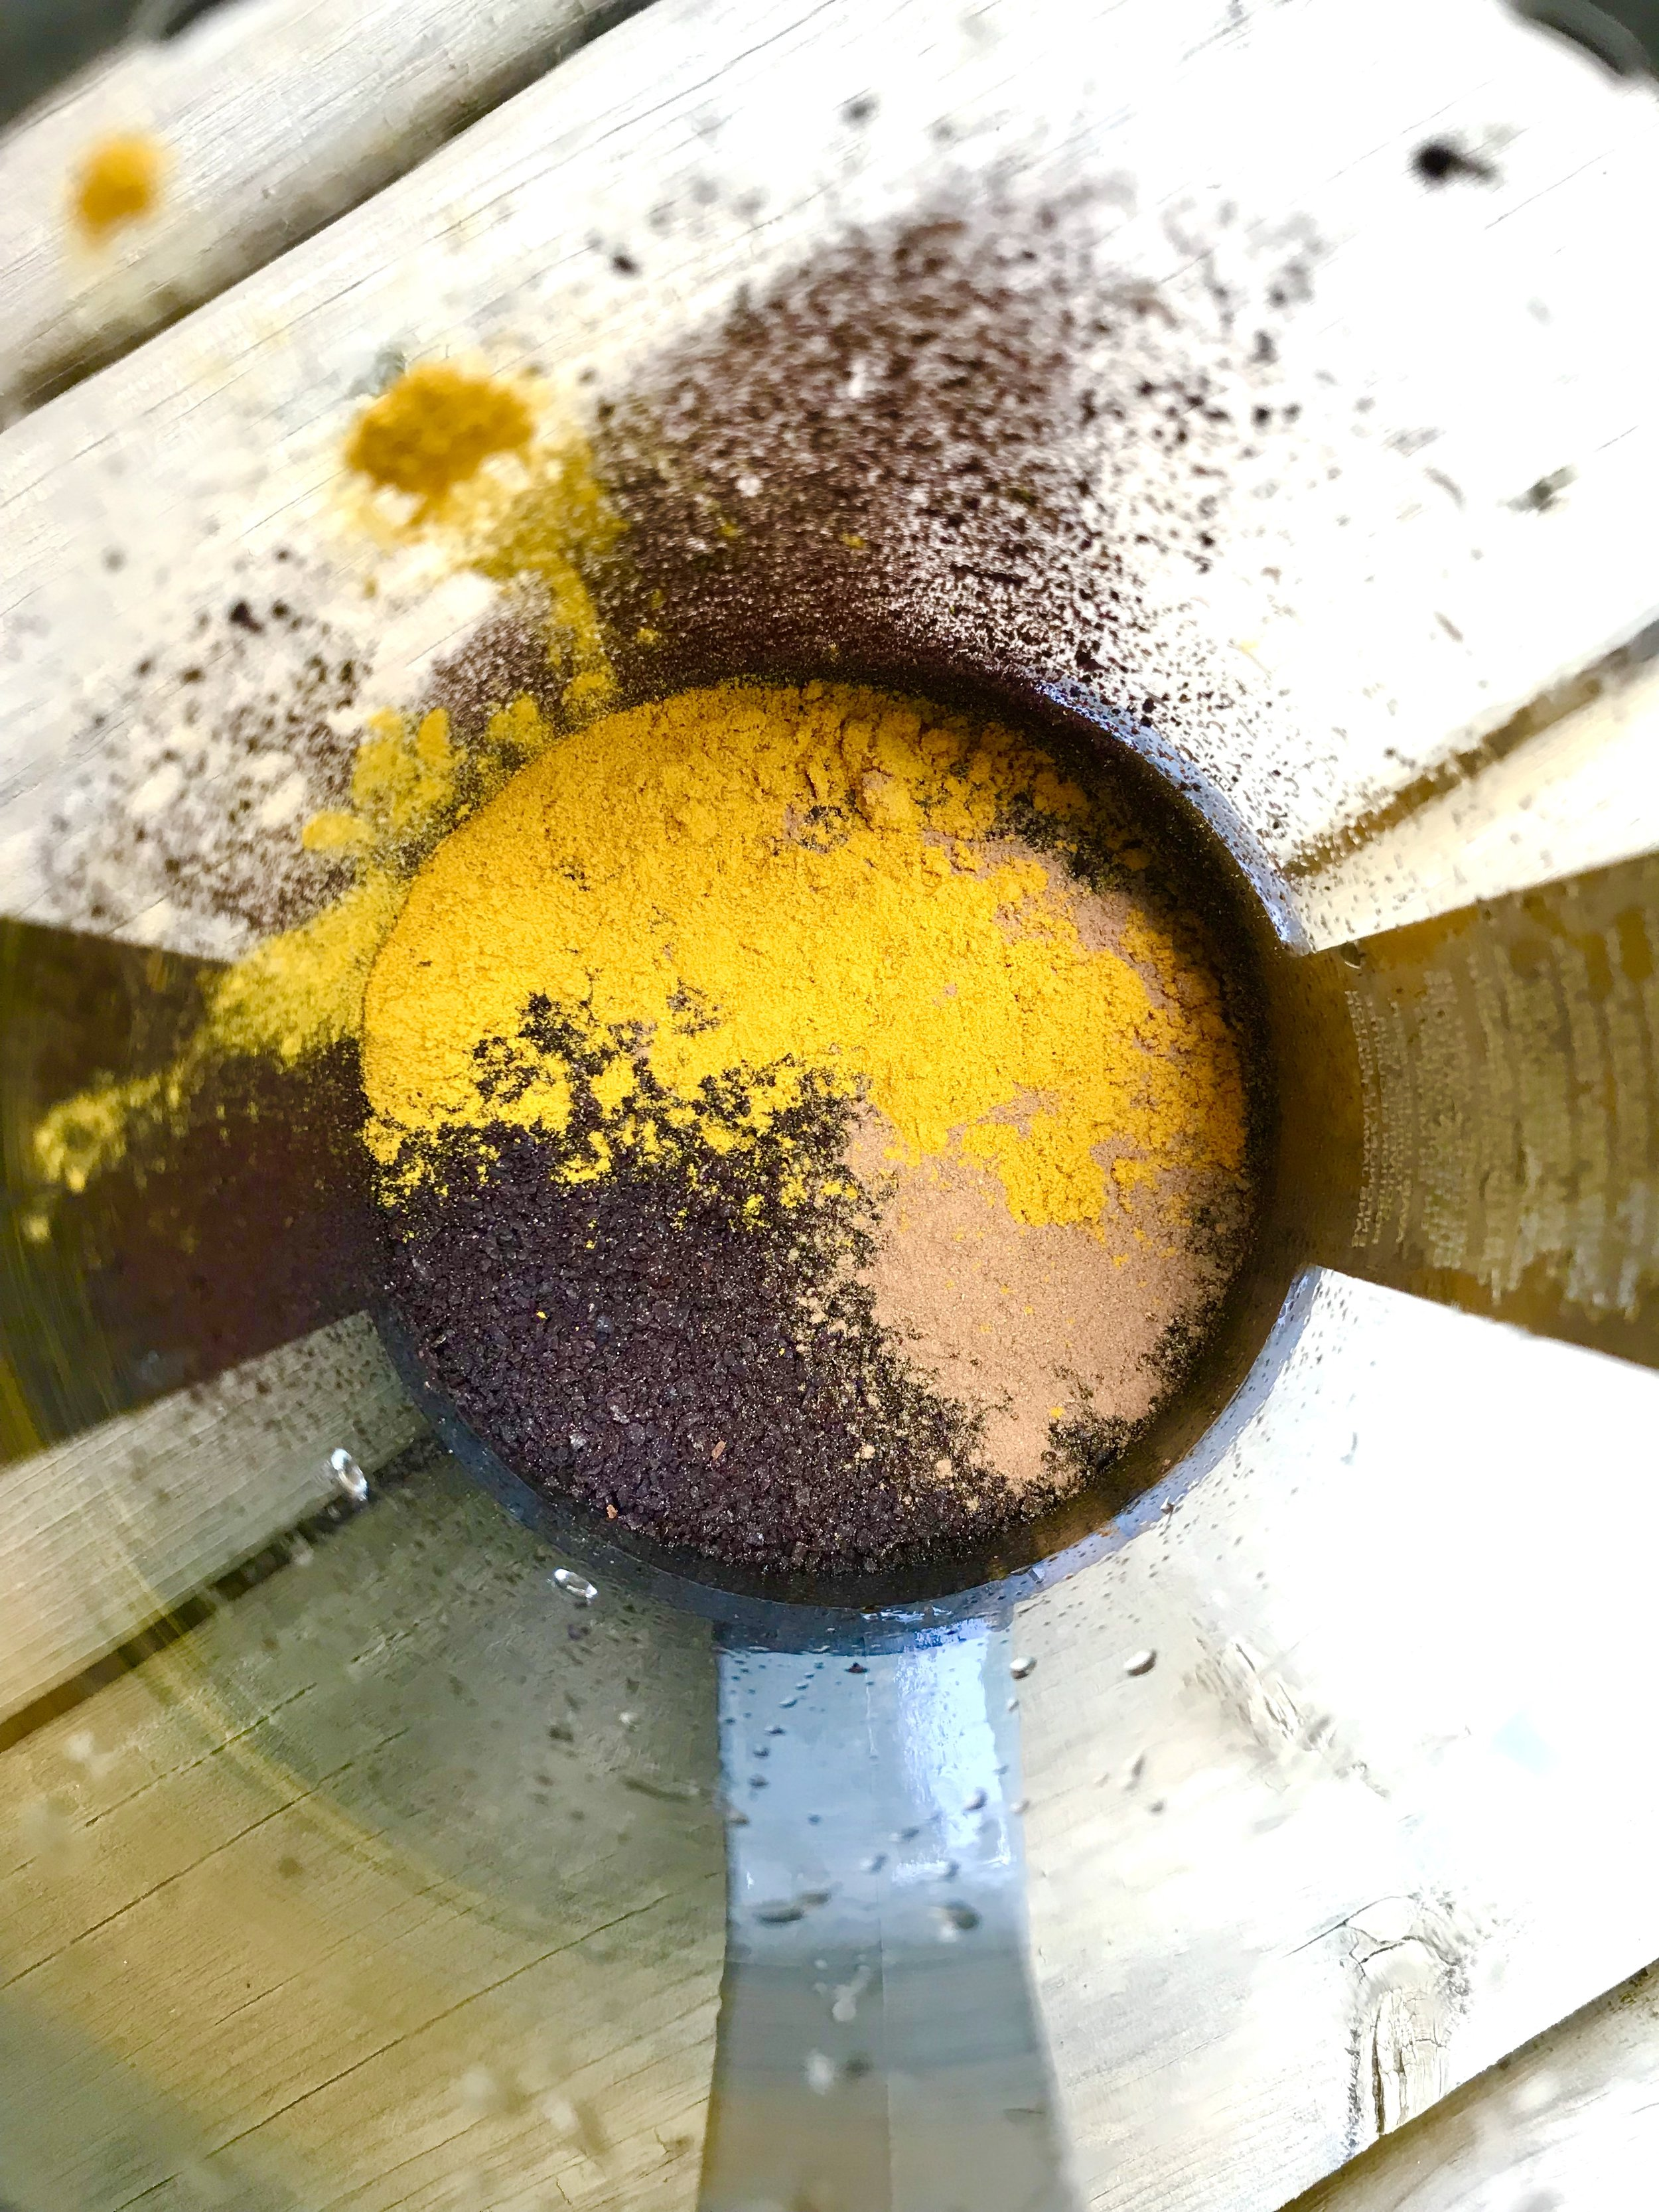 Black coffee with turmeric and cinnamon will boost your body's ability to fight inflammation from the very start of your day